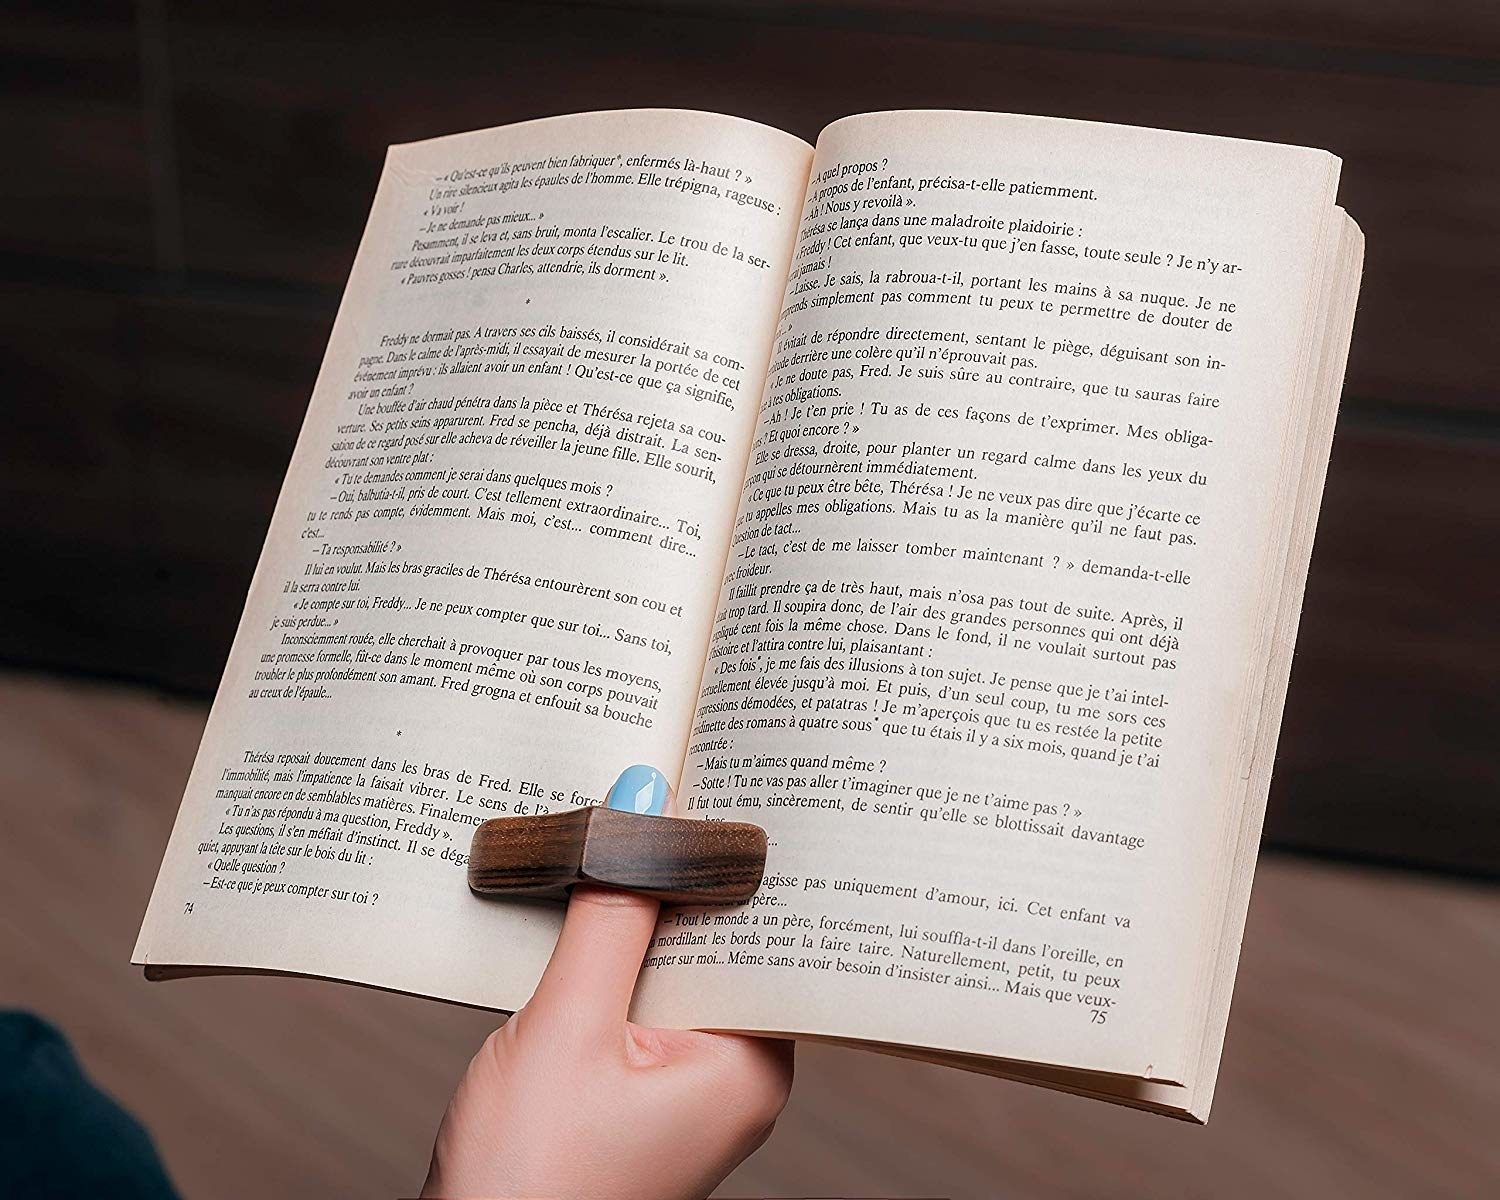 A person holding a paperback book open with a large wooden diamond-shaped ring on their thumb